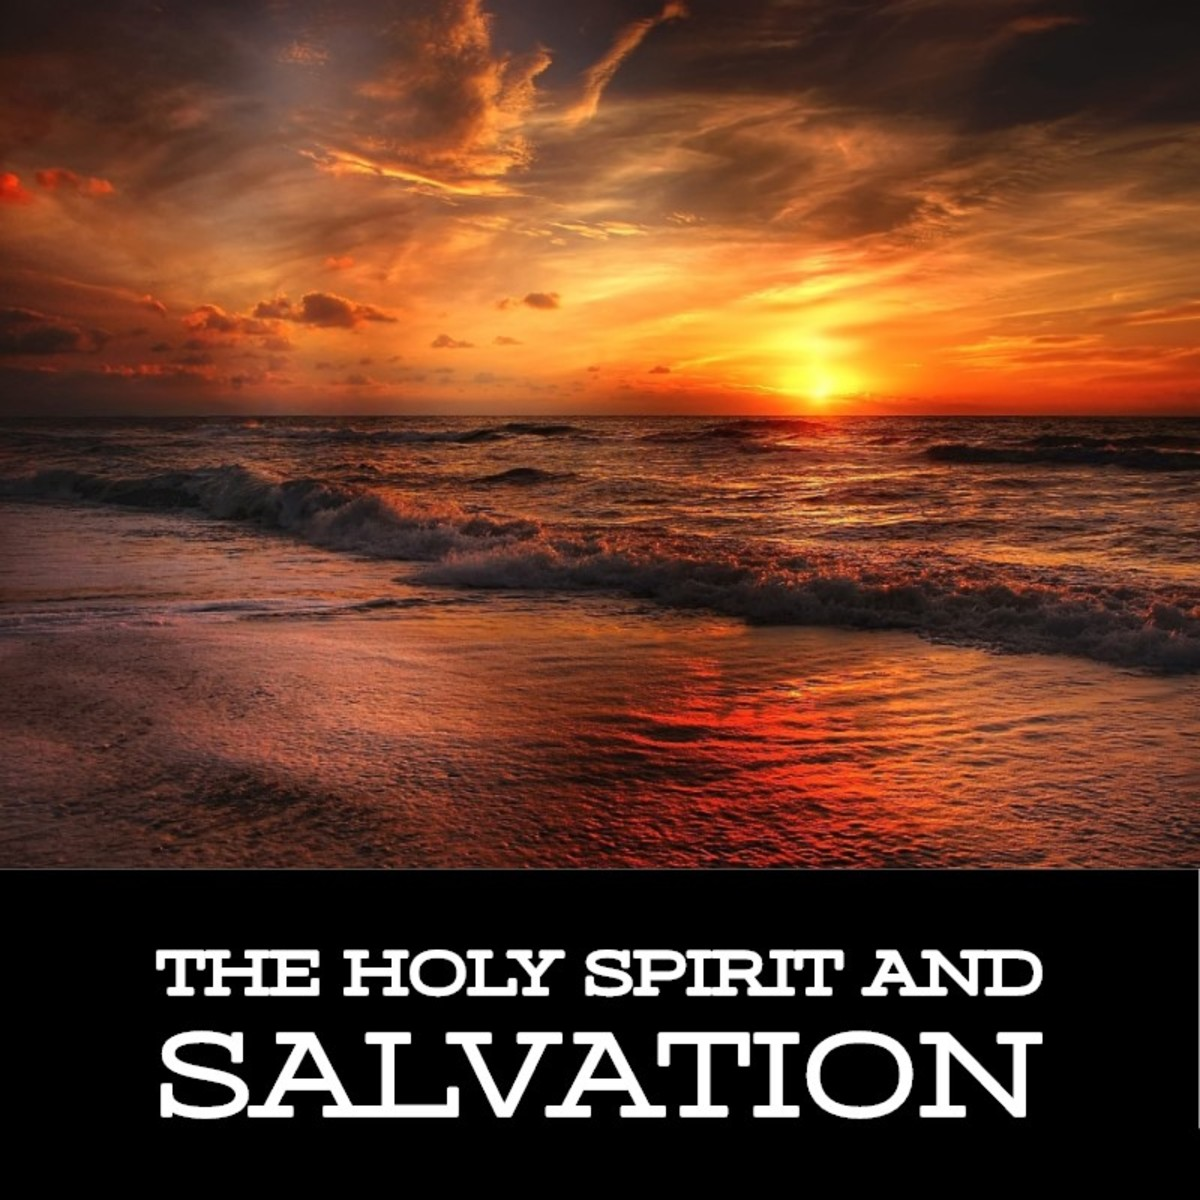 The Holy Spirit and Salvation.